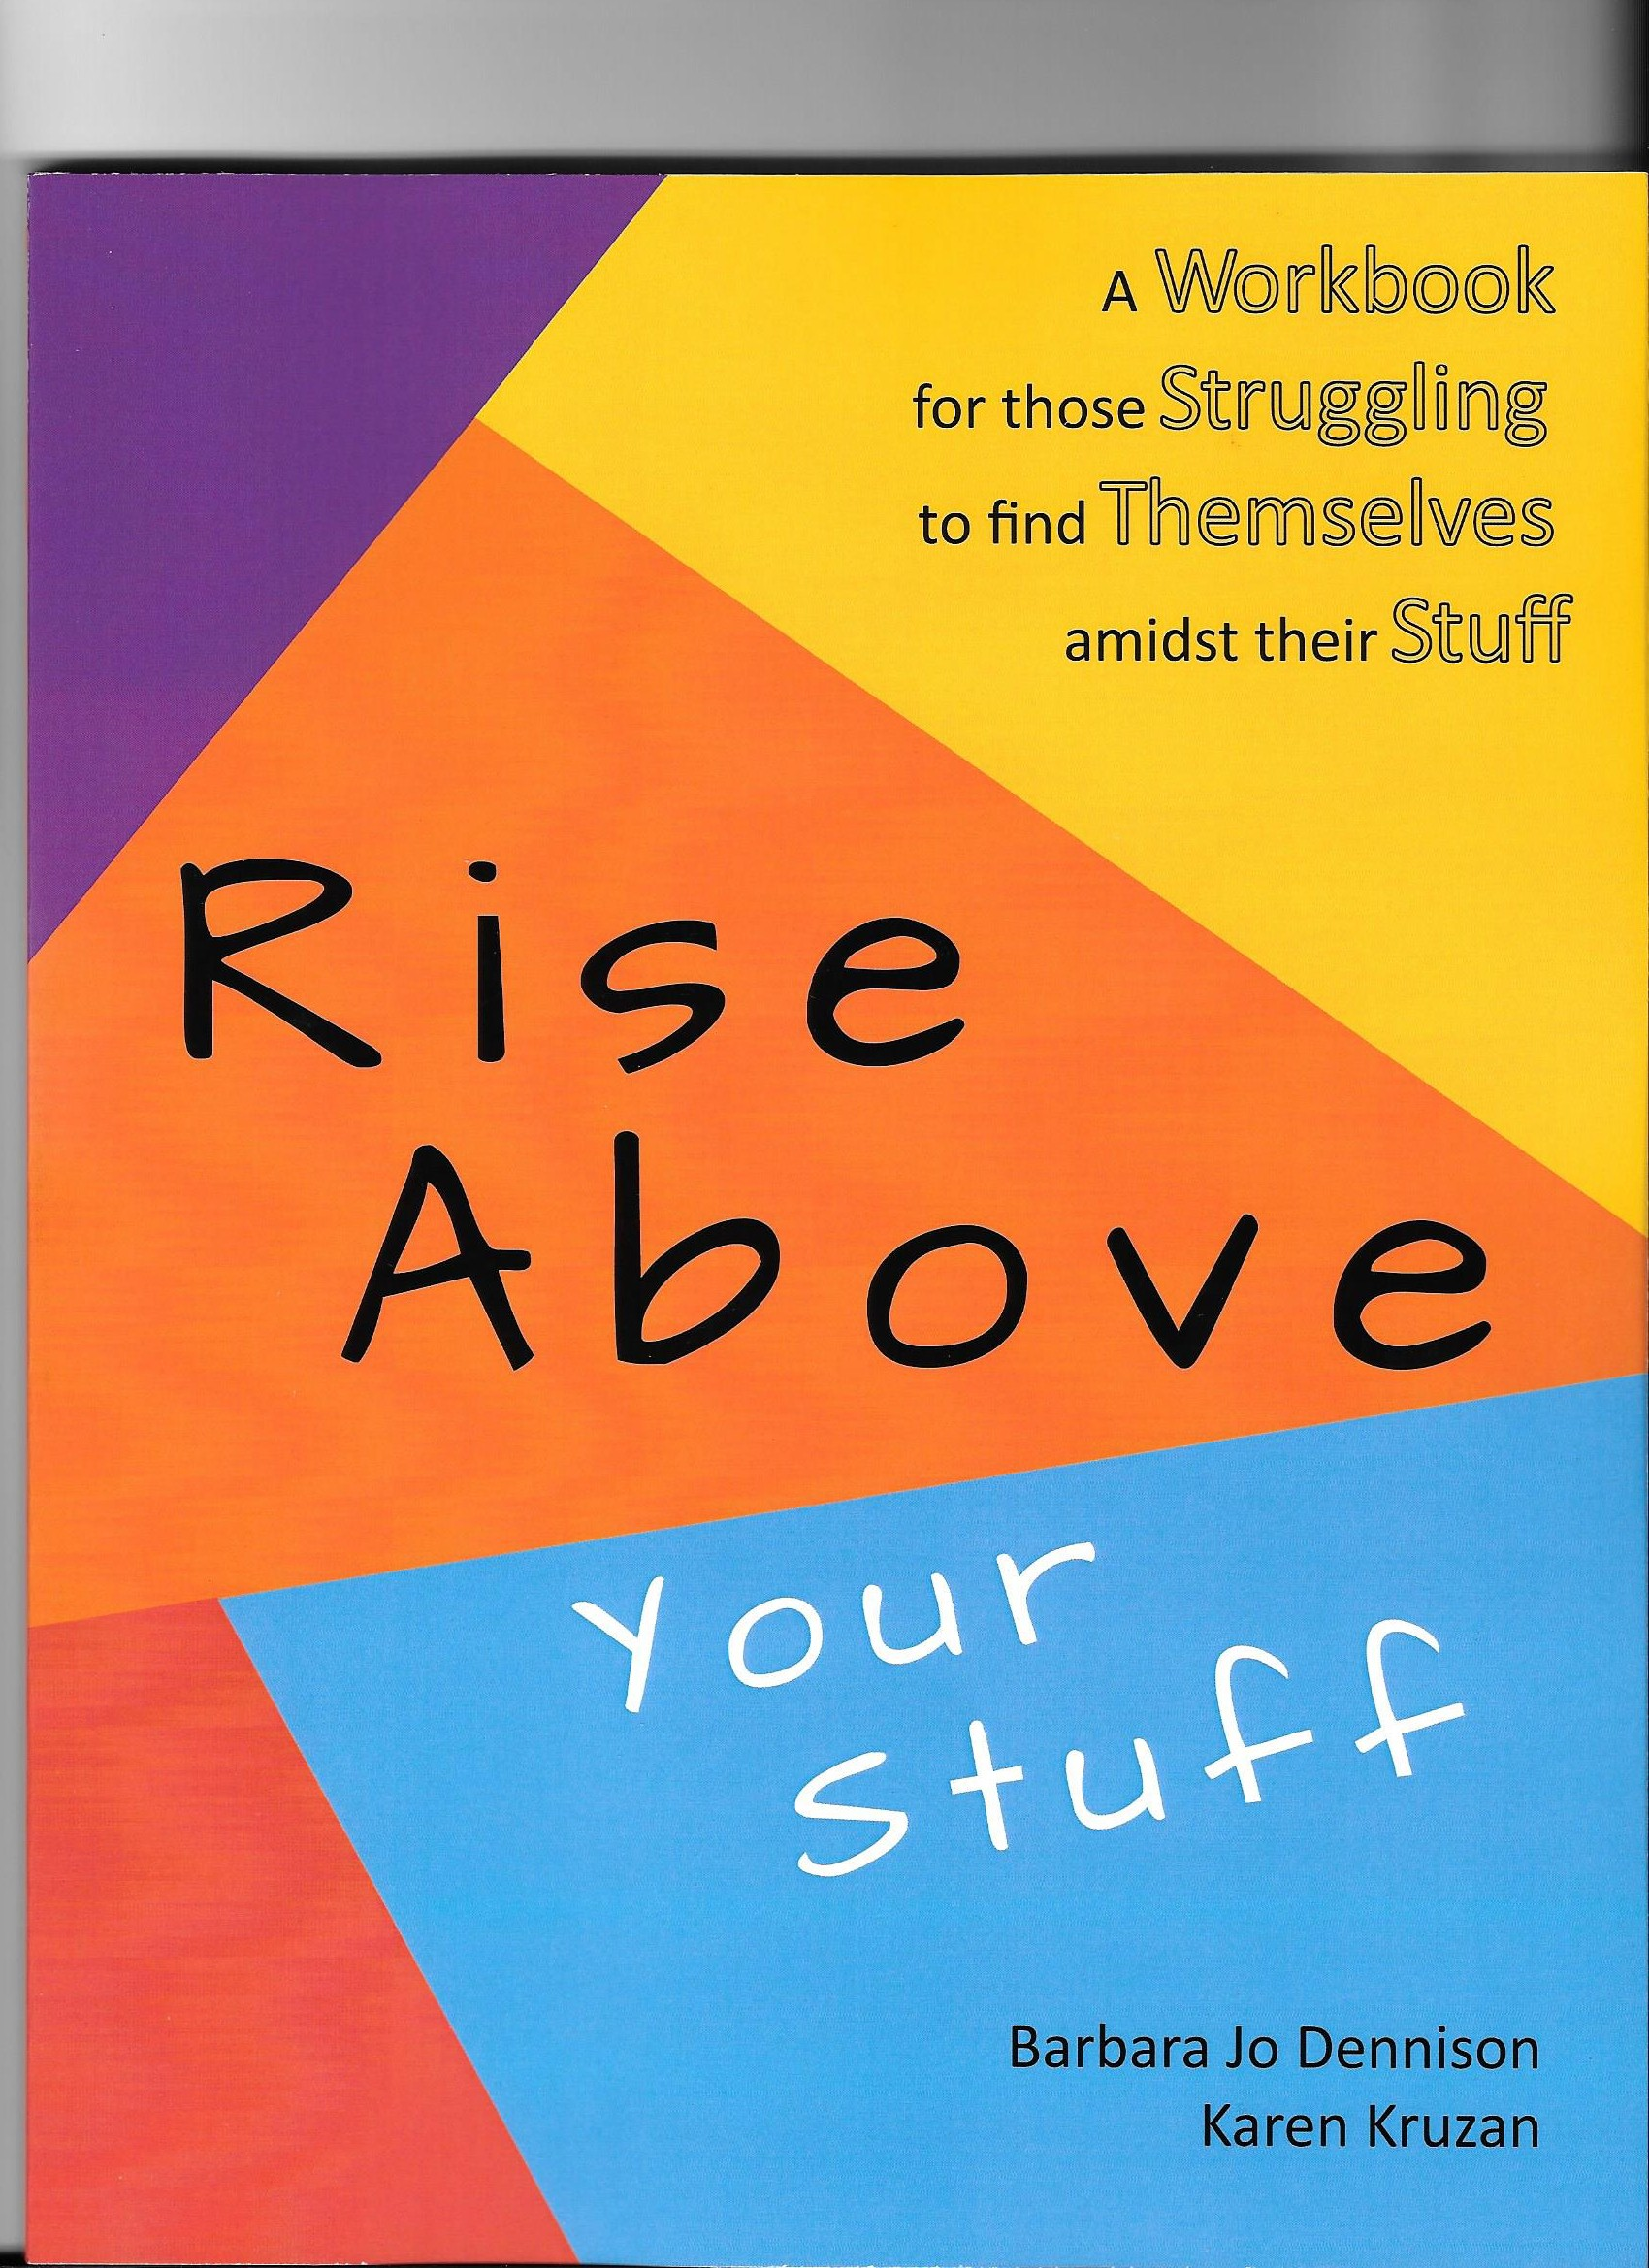 Rise Above Your Stuff Manual